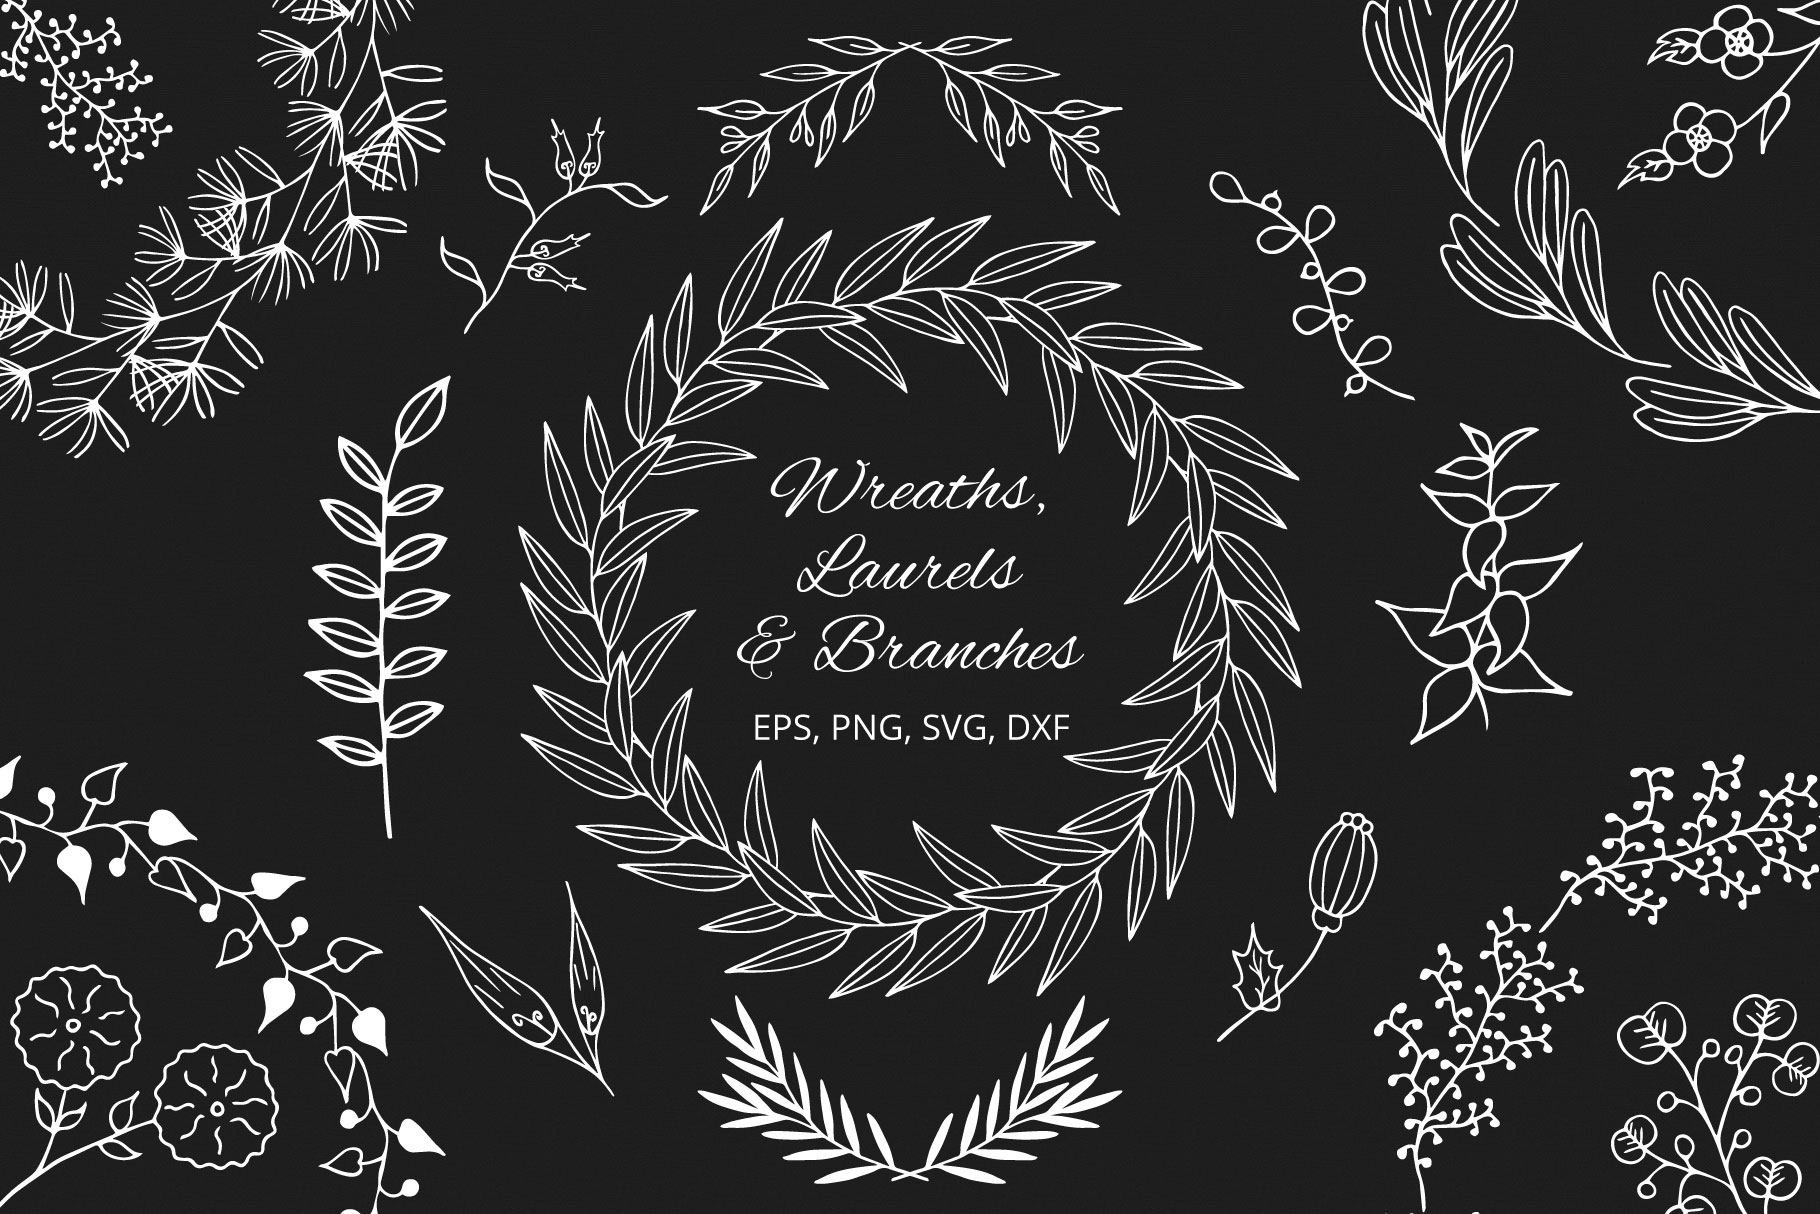 Download Free Hand Drawn Wreaths Graphic By Kirill S Workshop Creative Fabrica for Cricut Explore, Silhouette and other cutting machines.